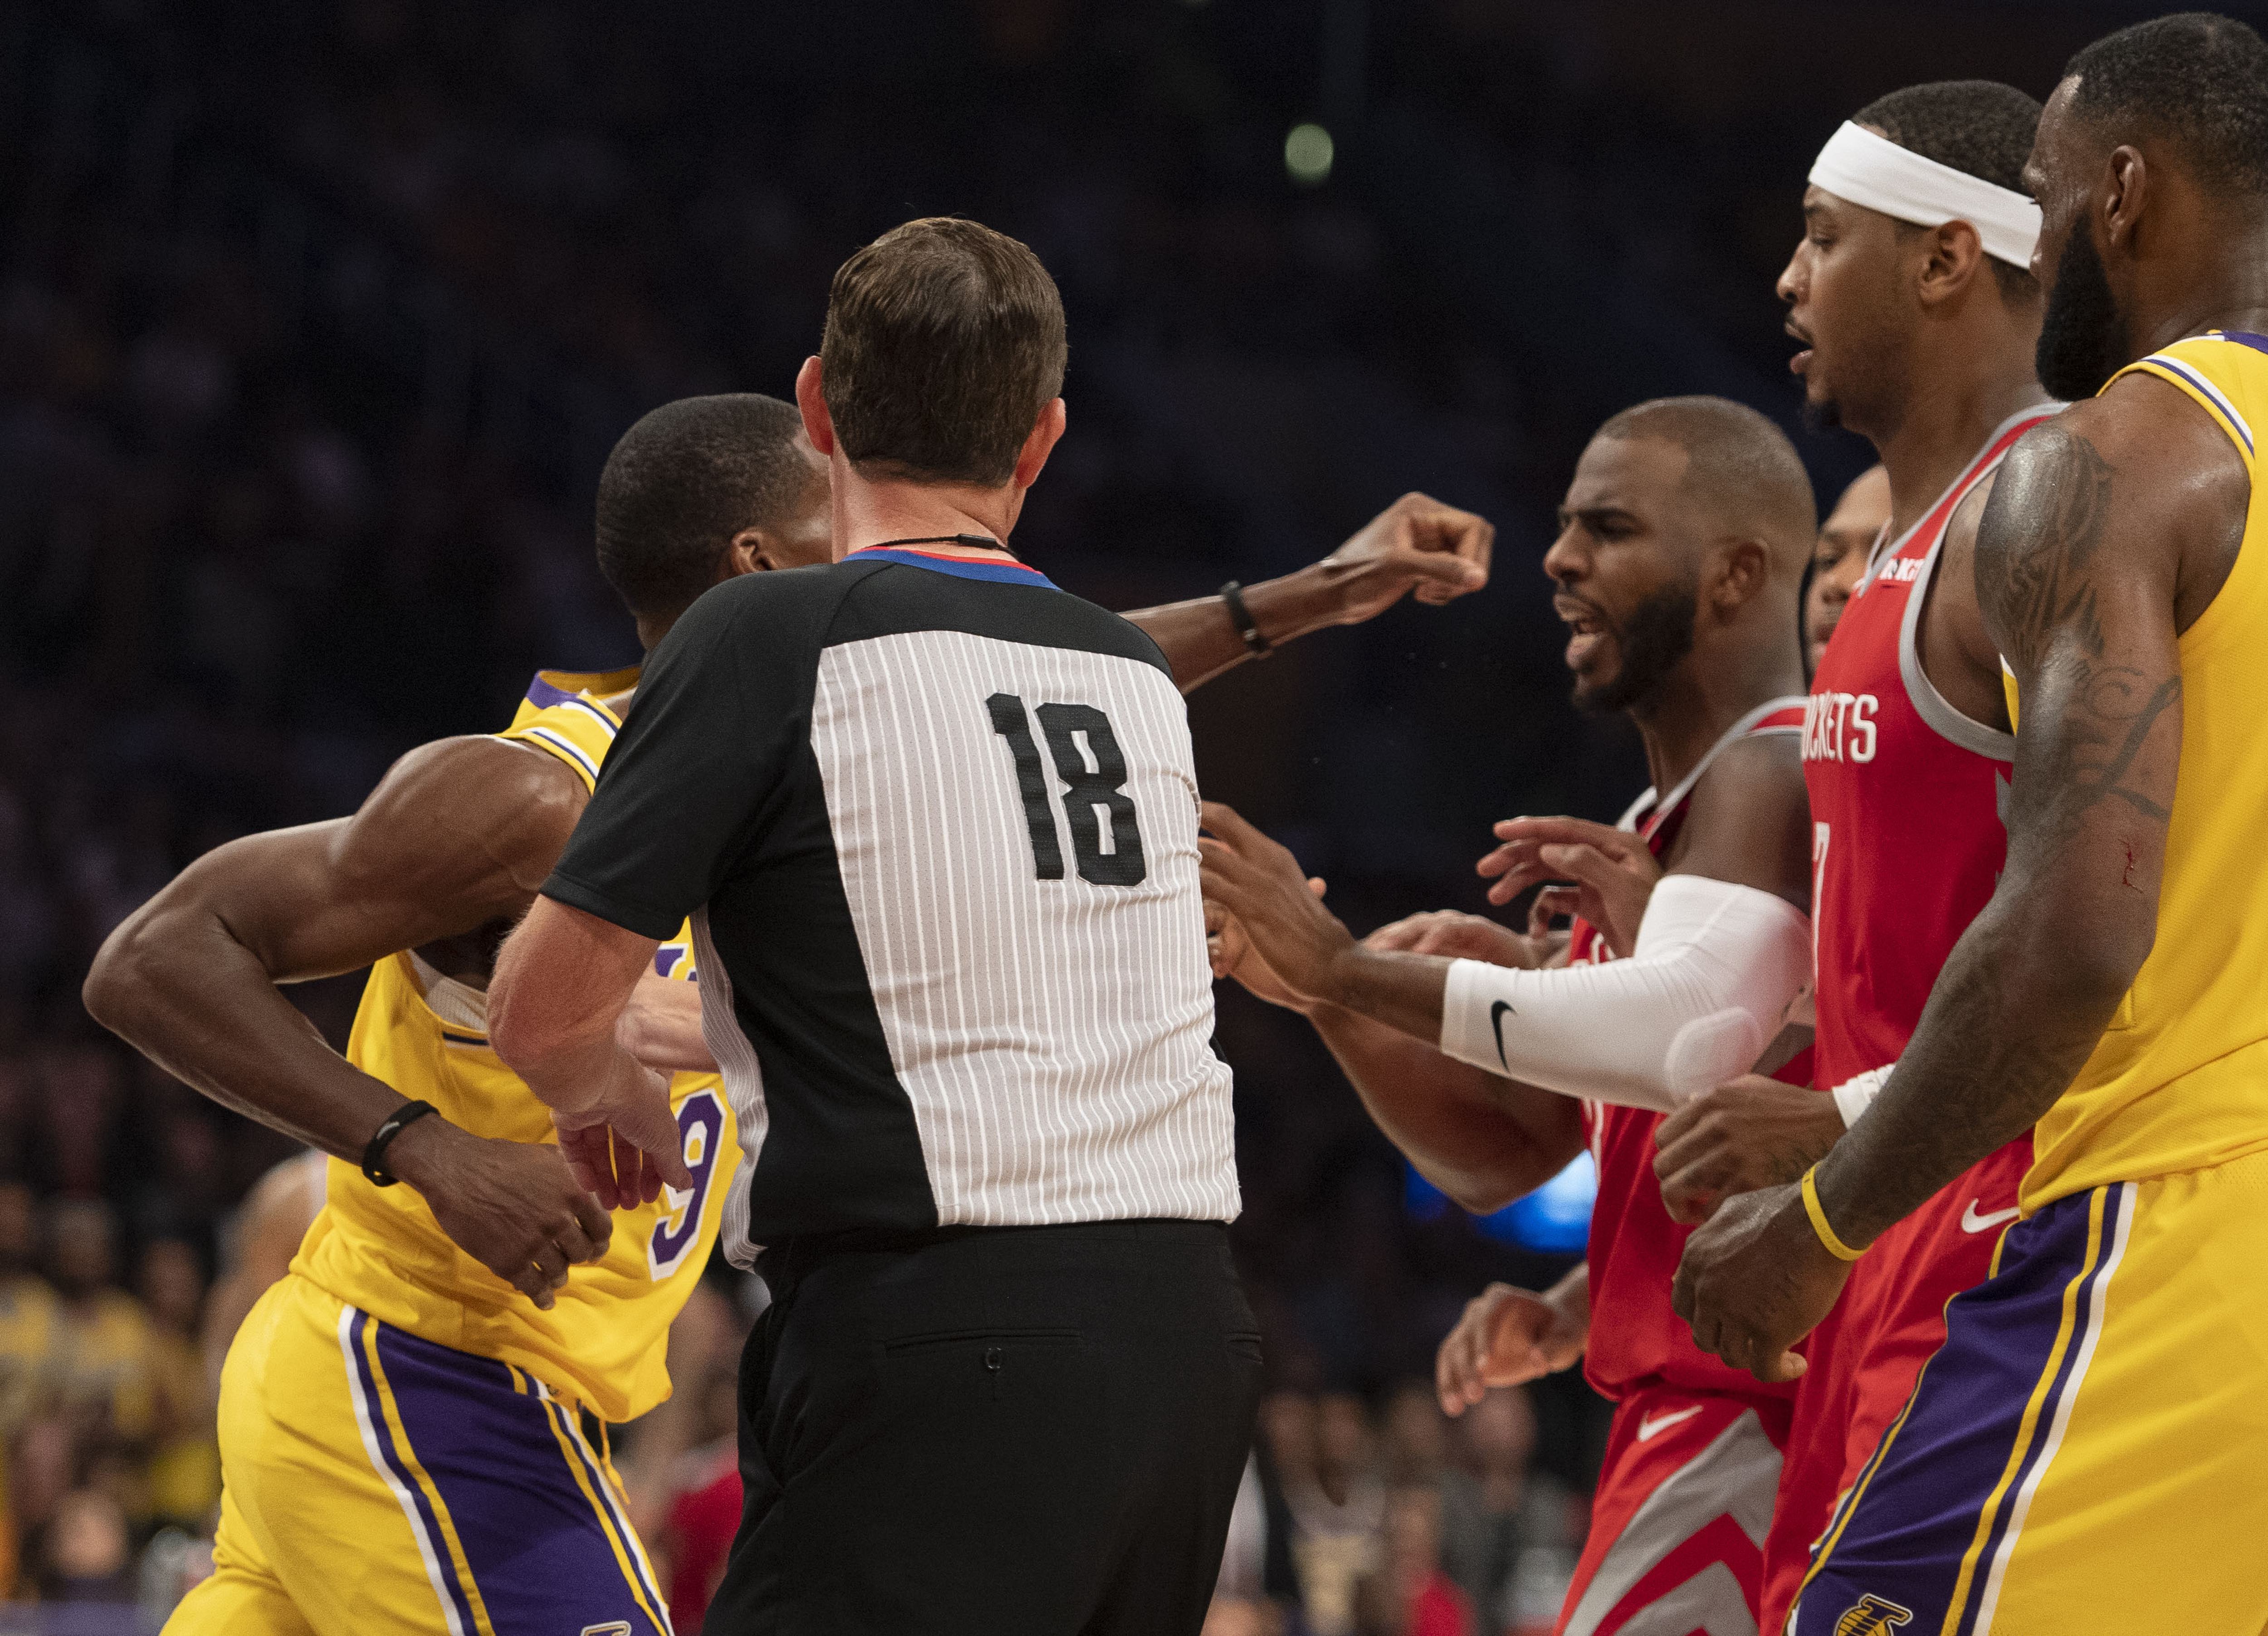 bdf2e595154a Rajon Rondo (left) of the Los Angeles Lakers punches Chris Paul (right) of the  Houston Rockets as referee Matt Boland (center) tries to break it up during  ...